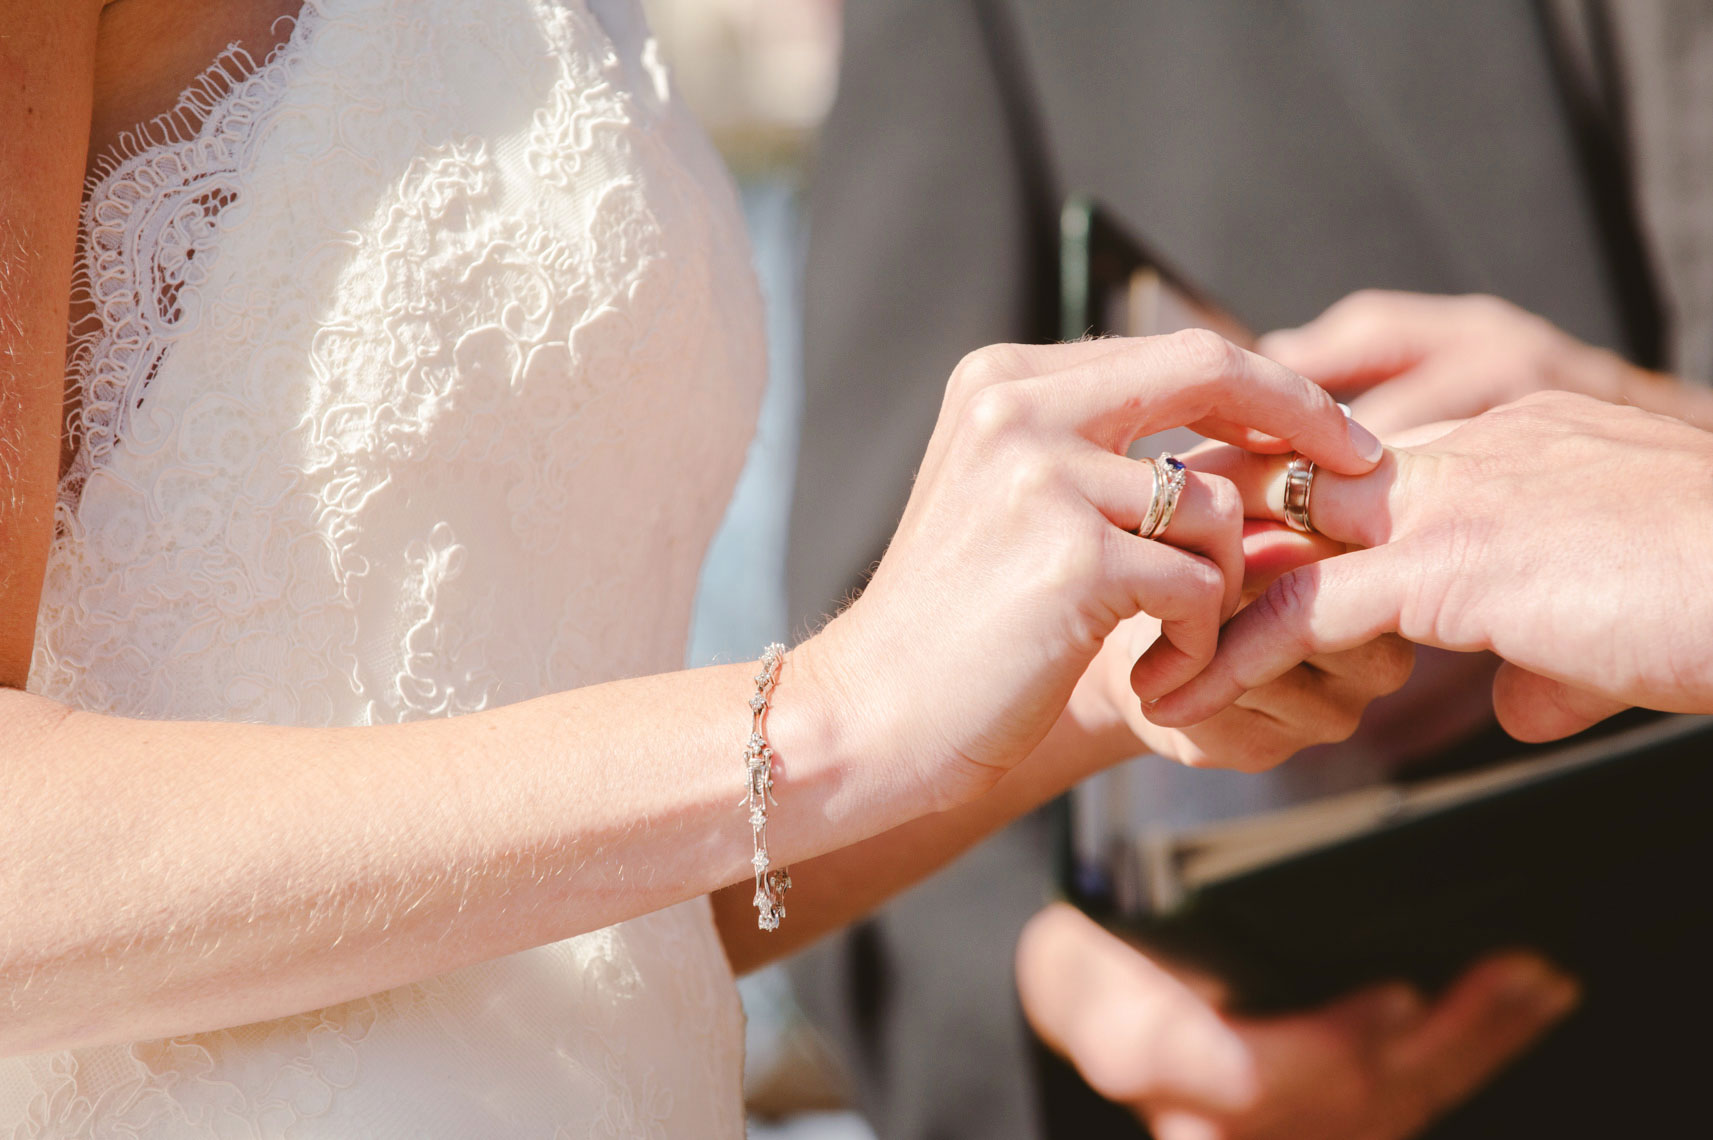 The_Mountain_Winery_saratoga_wedding_ceremony_rings